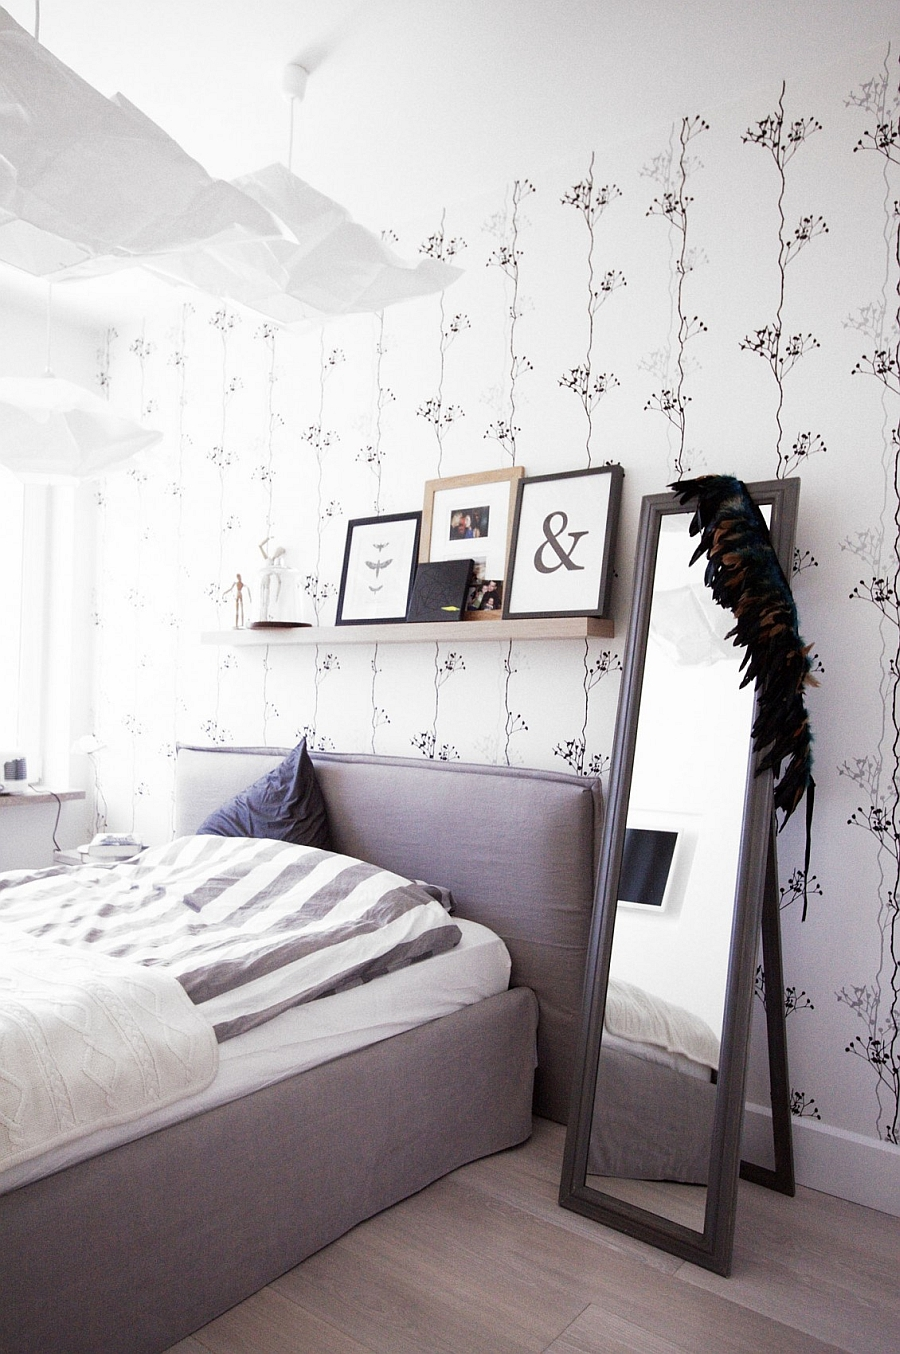 Floating shelf above the bed with framed picture collection